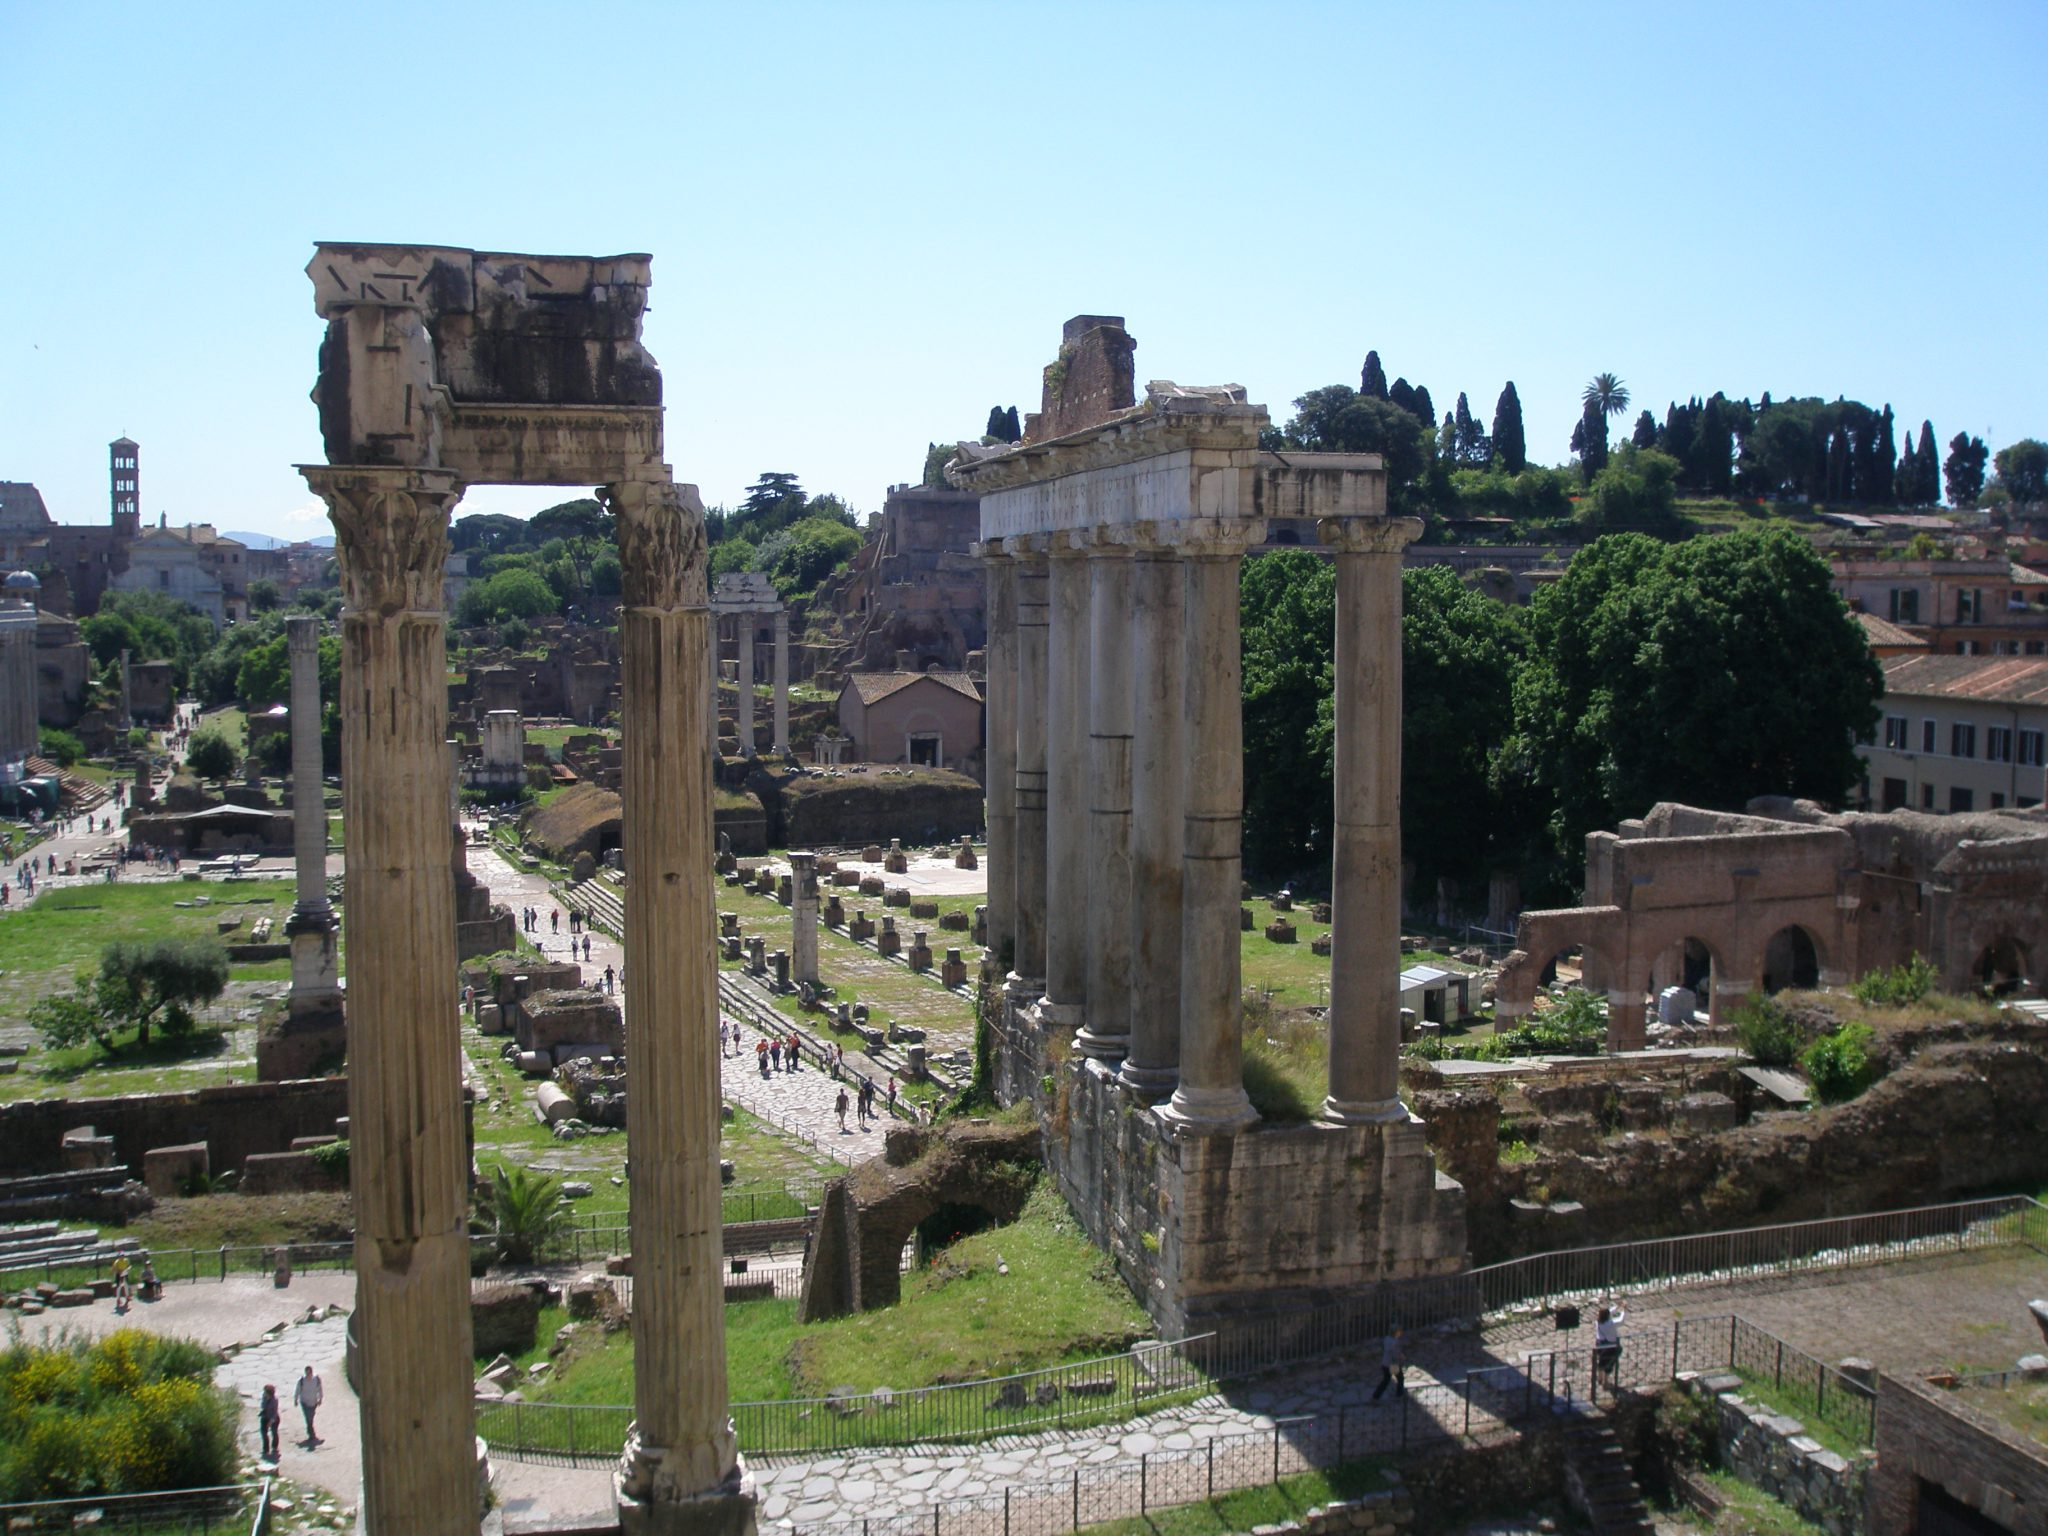 Seen from the Tabularium: in the foreground, another view of the Temple of Concord, & the Temple of Saturn. The orderly progression of column footings in the central, middle-ground mark the location of the Basilica Julia. The Palatine Hill is in the background.